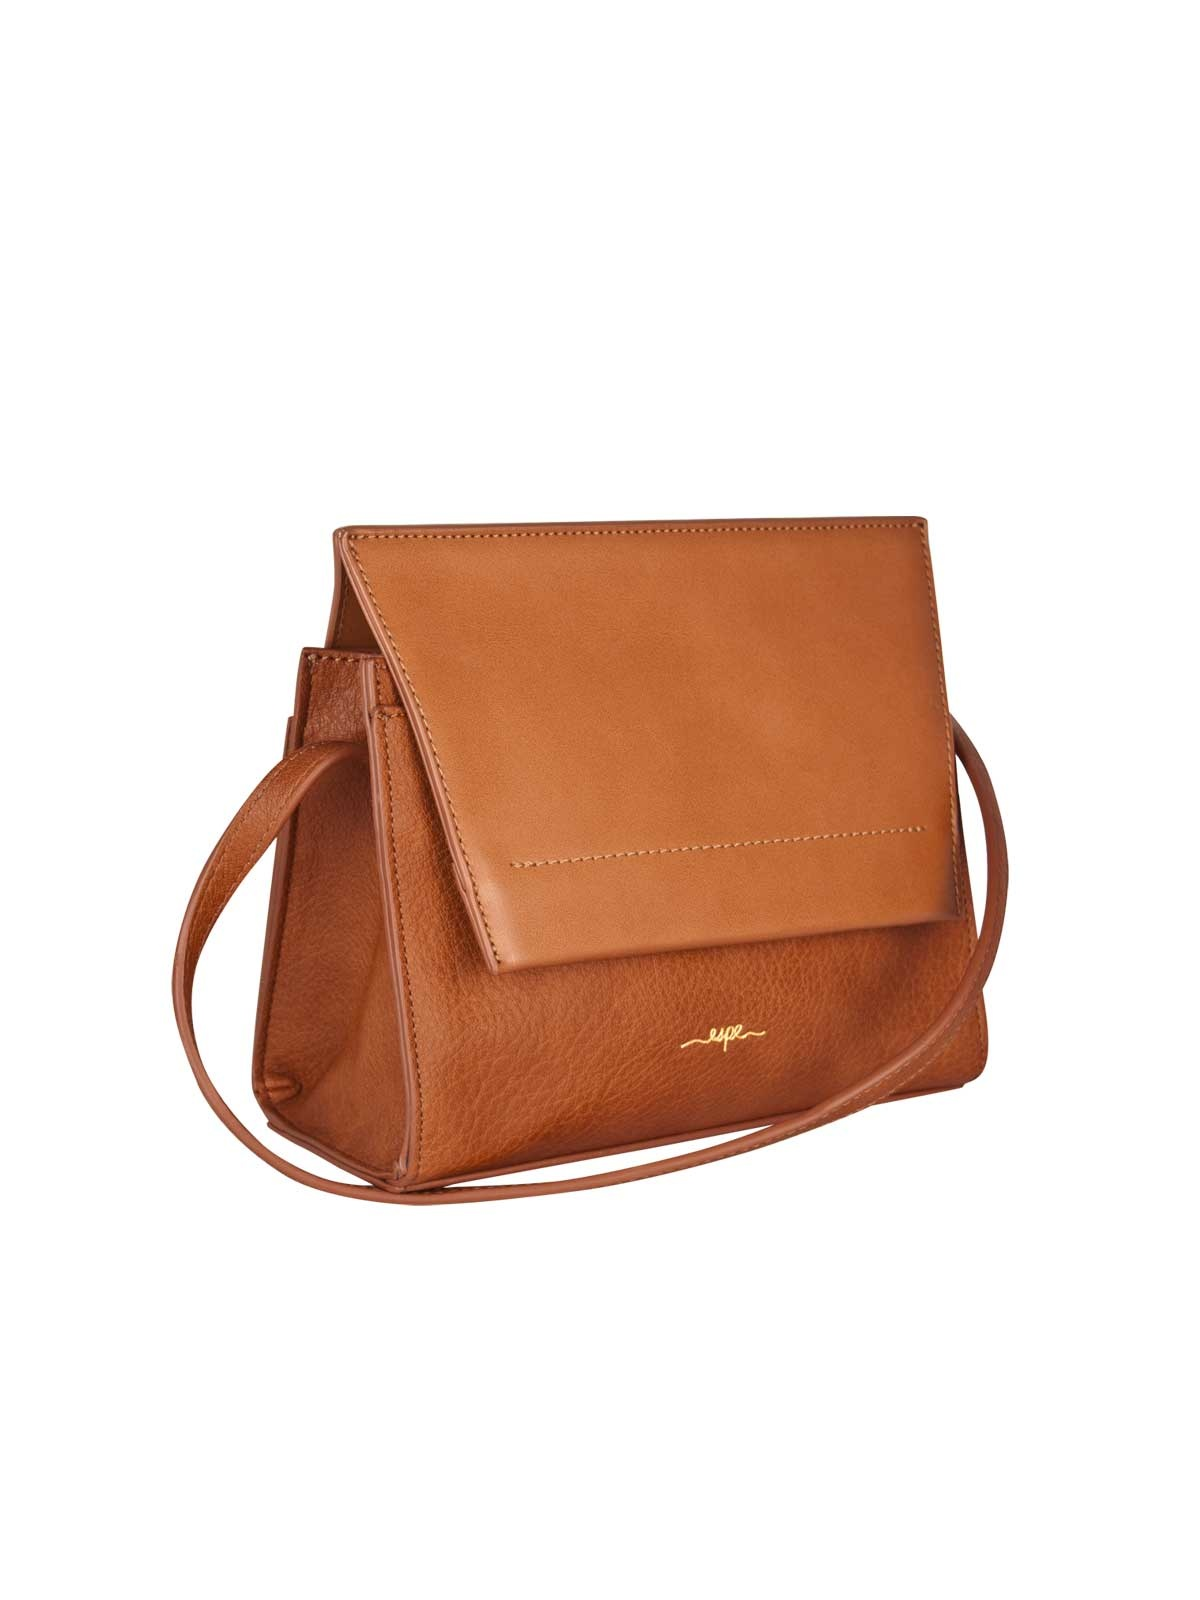 Espe Espe Savannah Crossbody